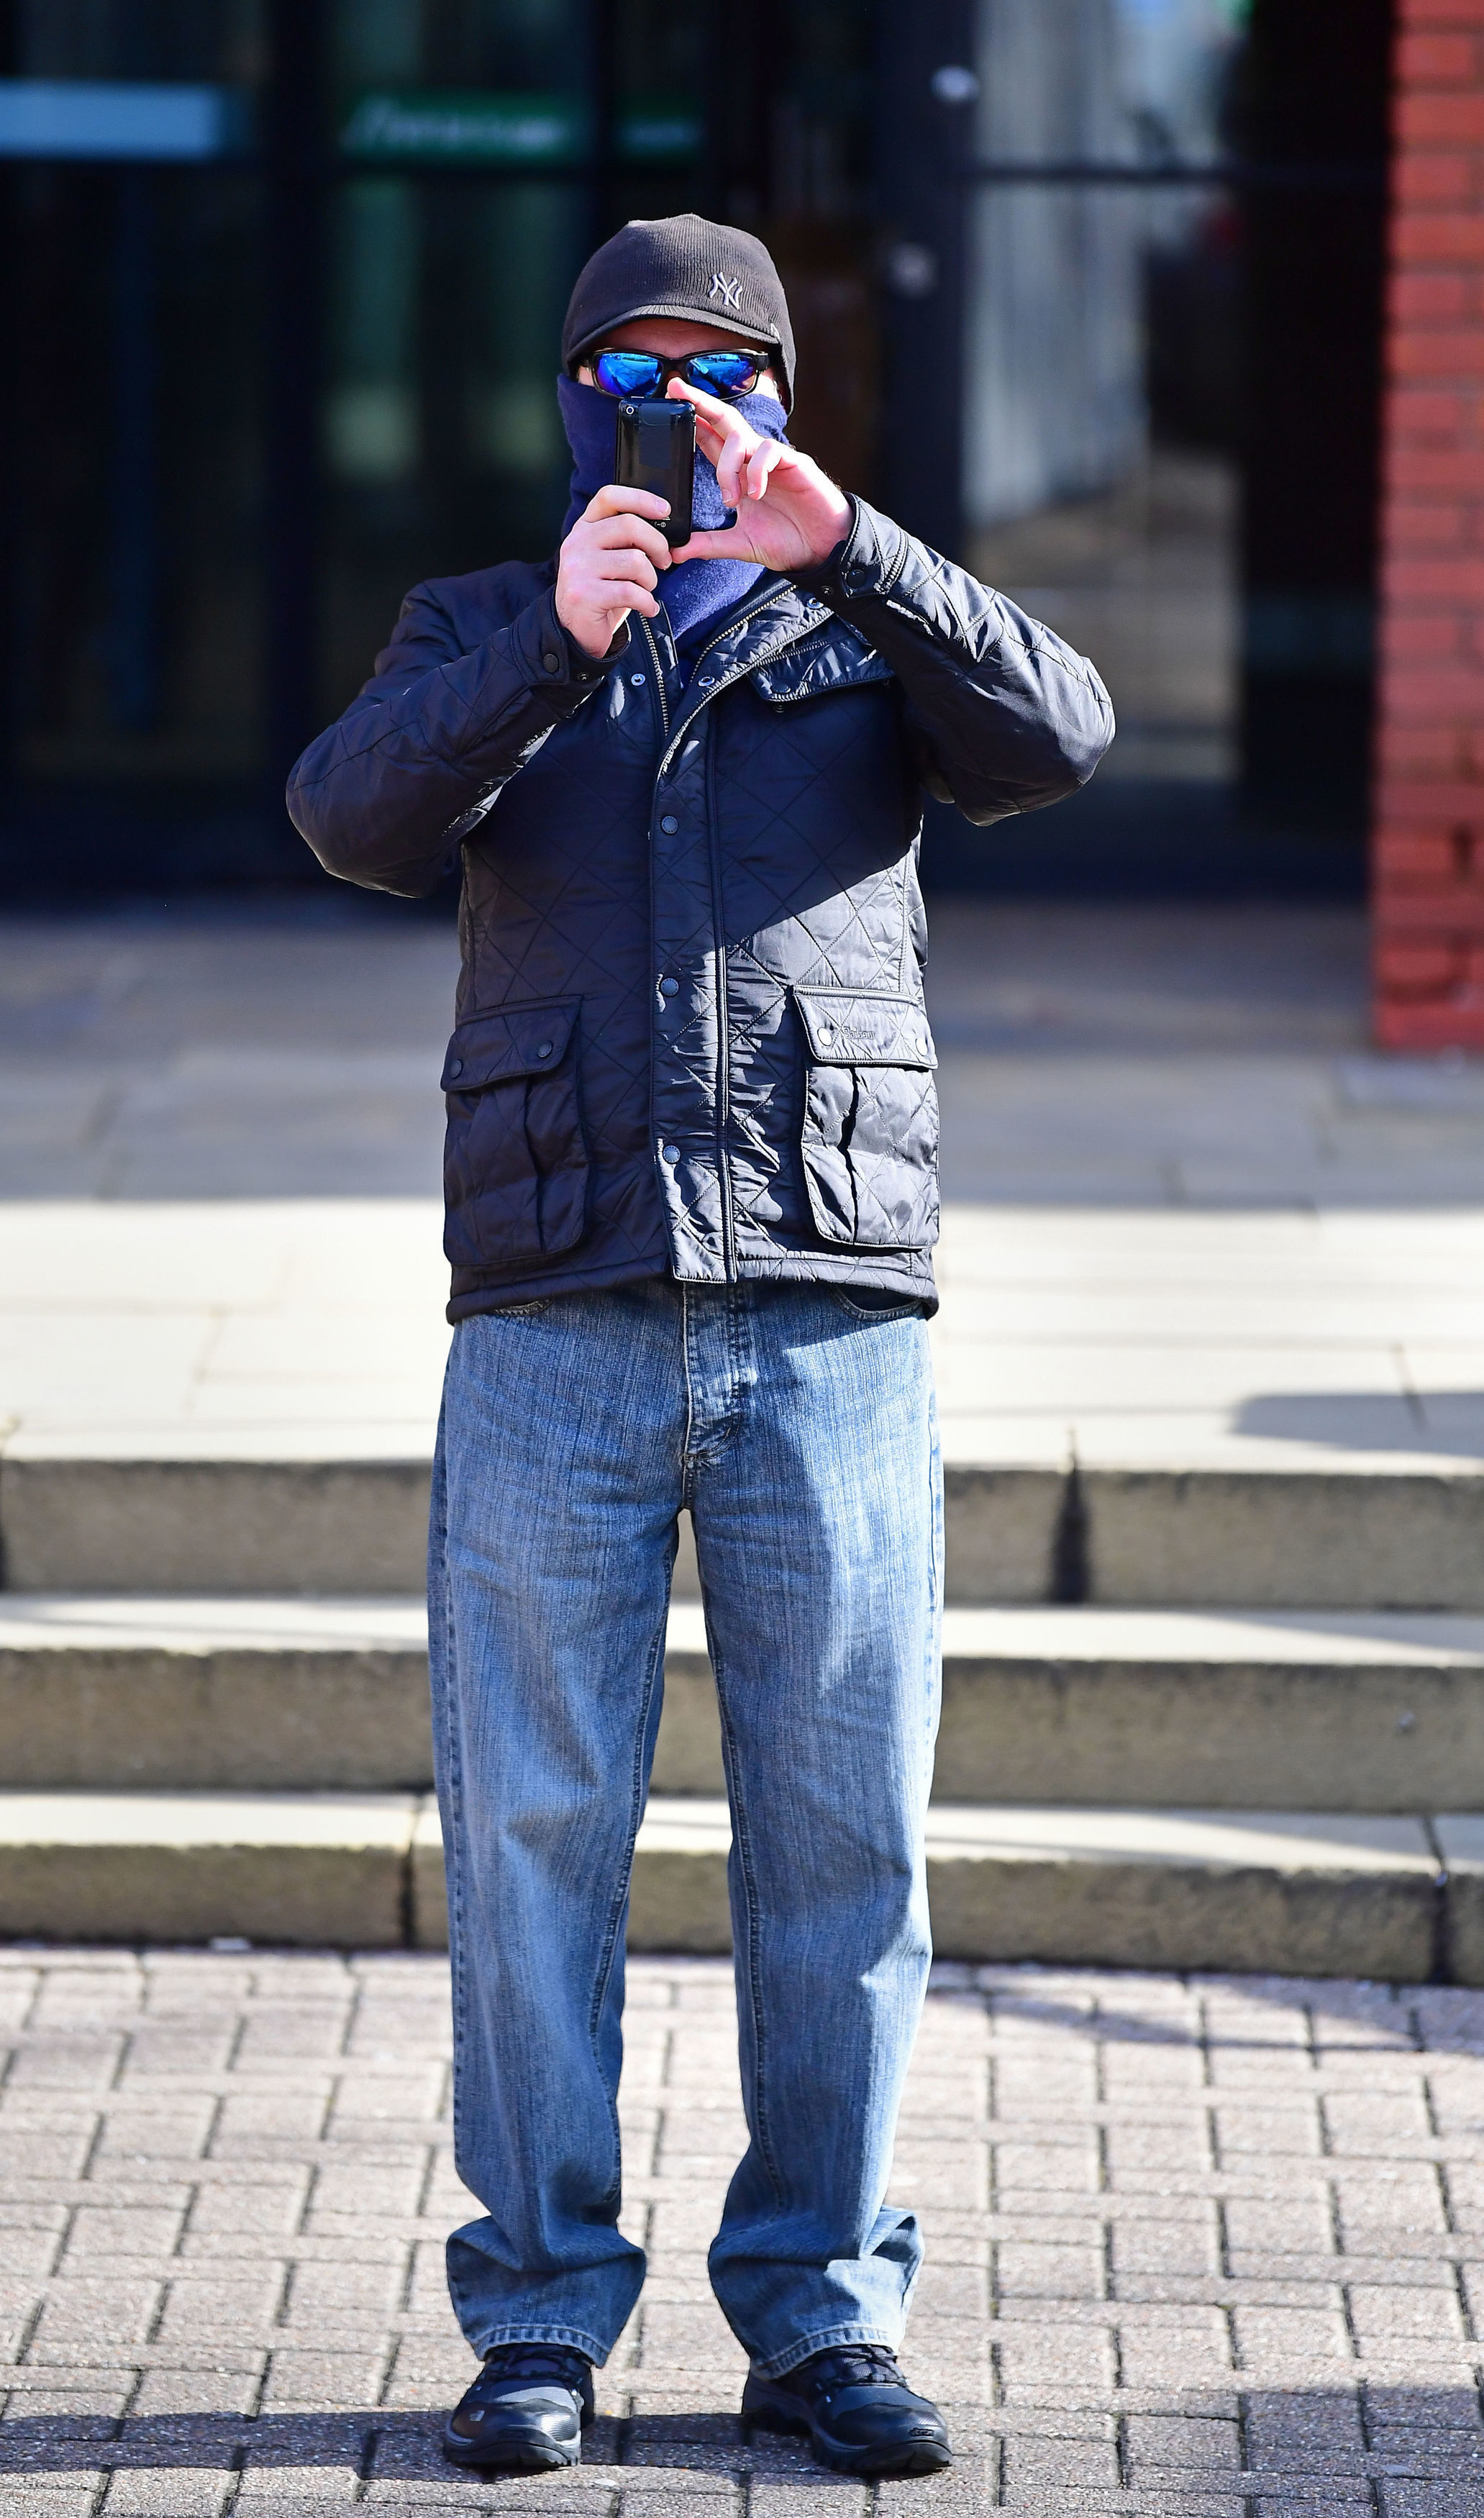 Edward Putnam outside court today (Thursday) Credit: PA